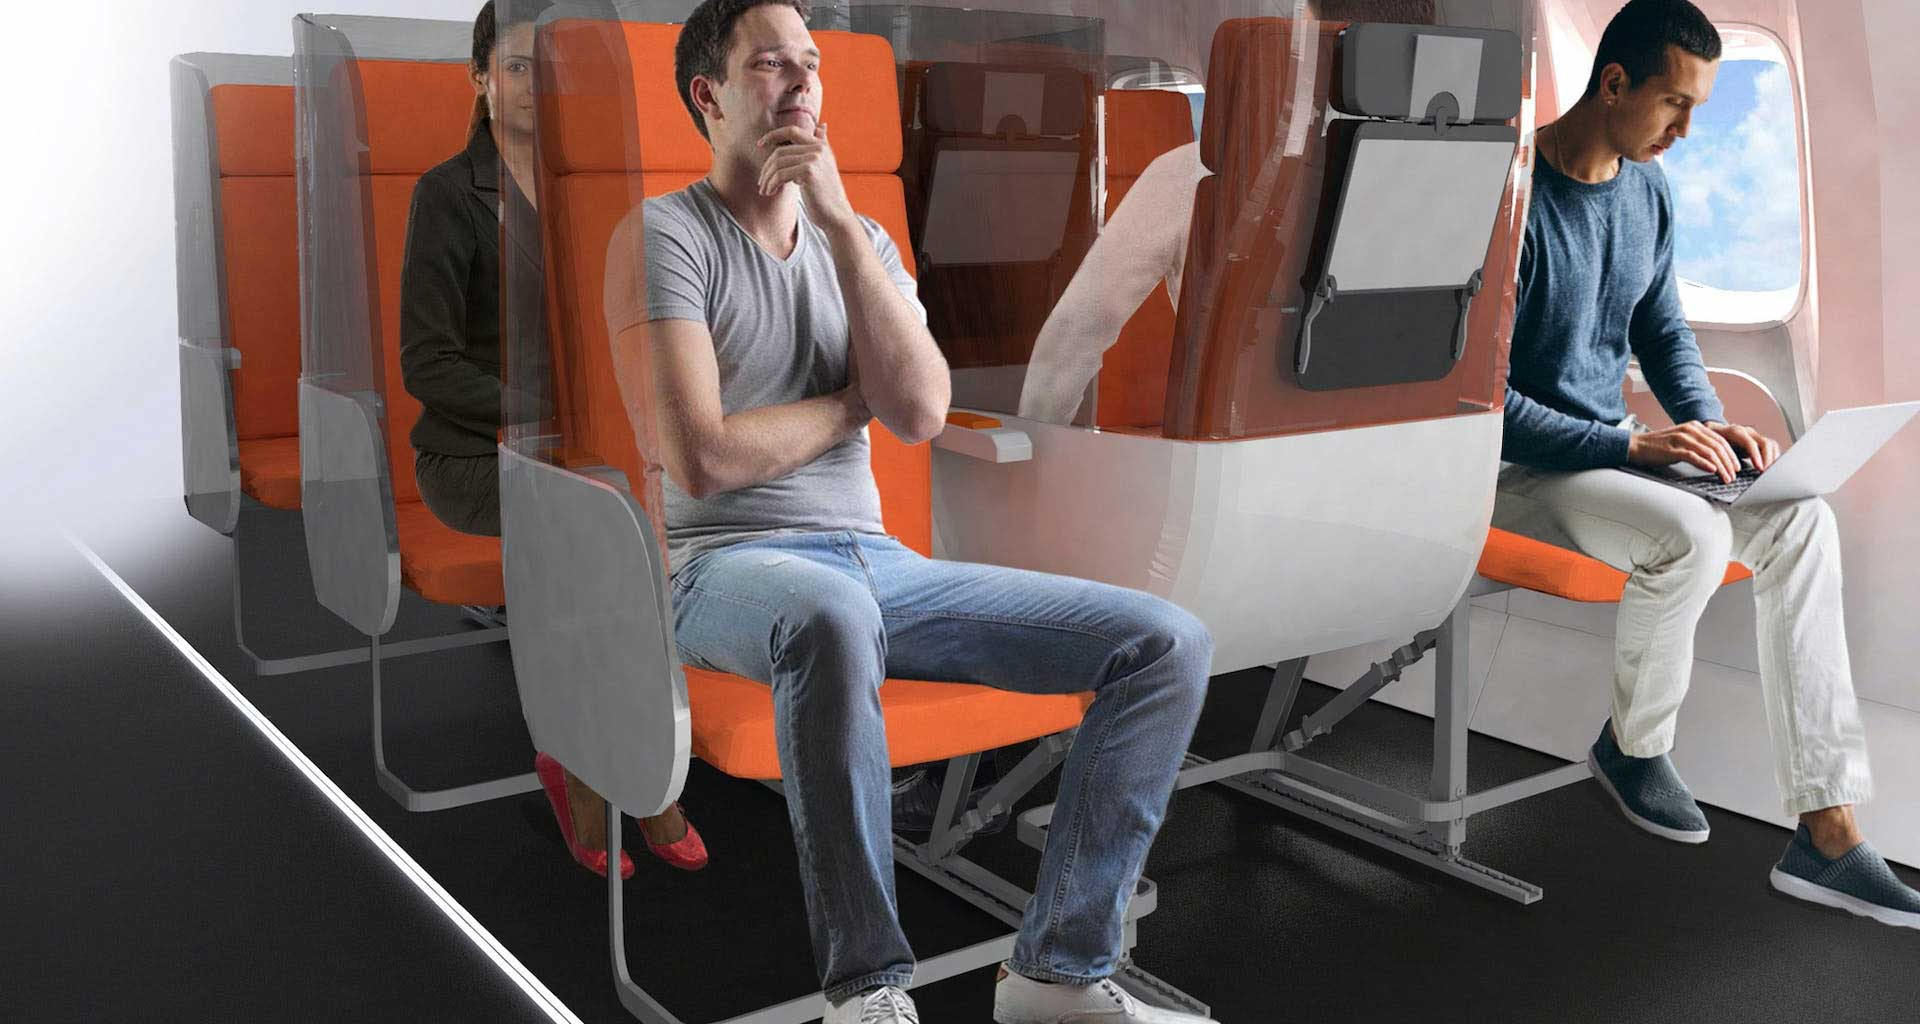 Airplane seats with privacy barriers between each seat.